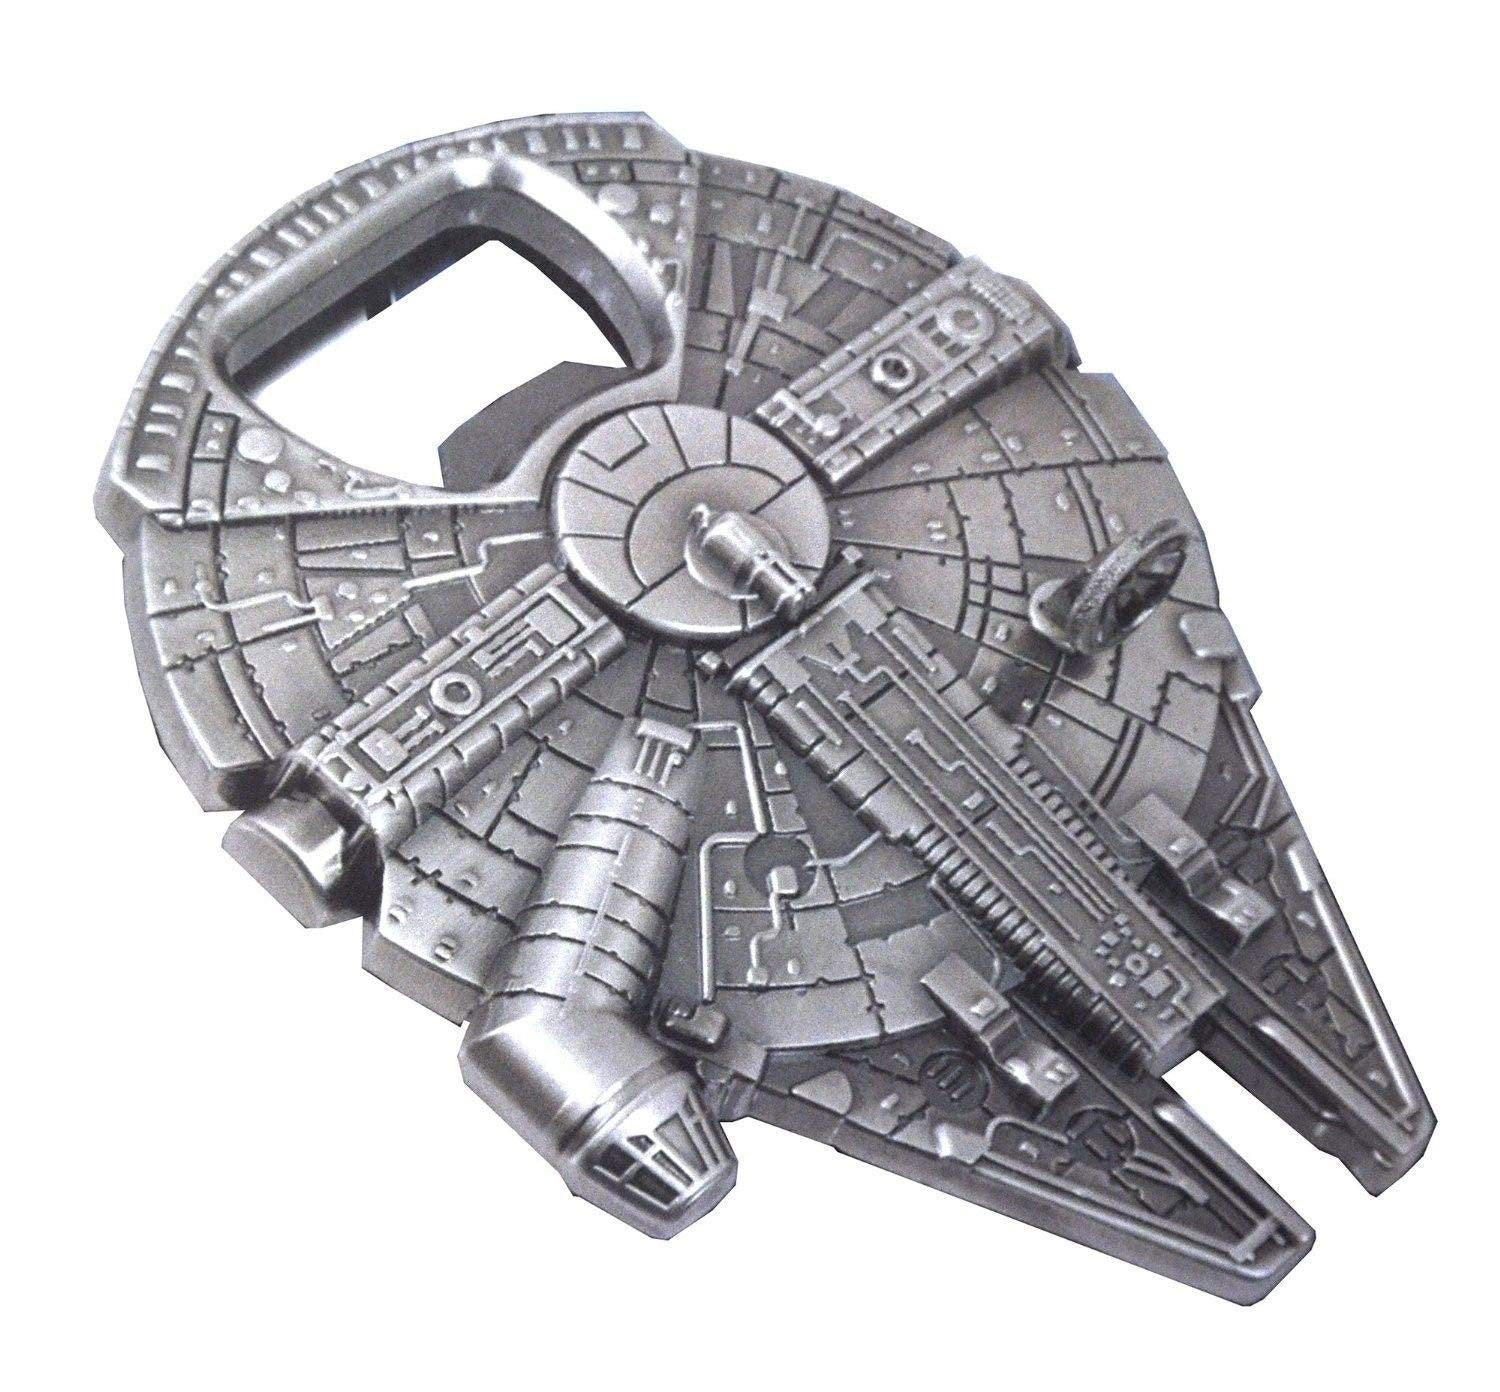 NEW Star Wars Rebel Alliance Millenium Falcon Metal Bottle Opener